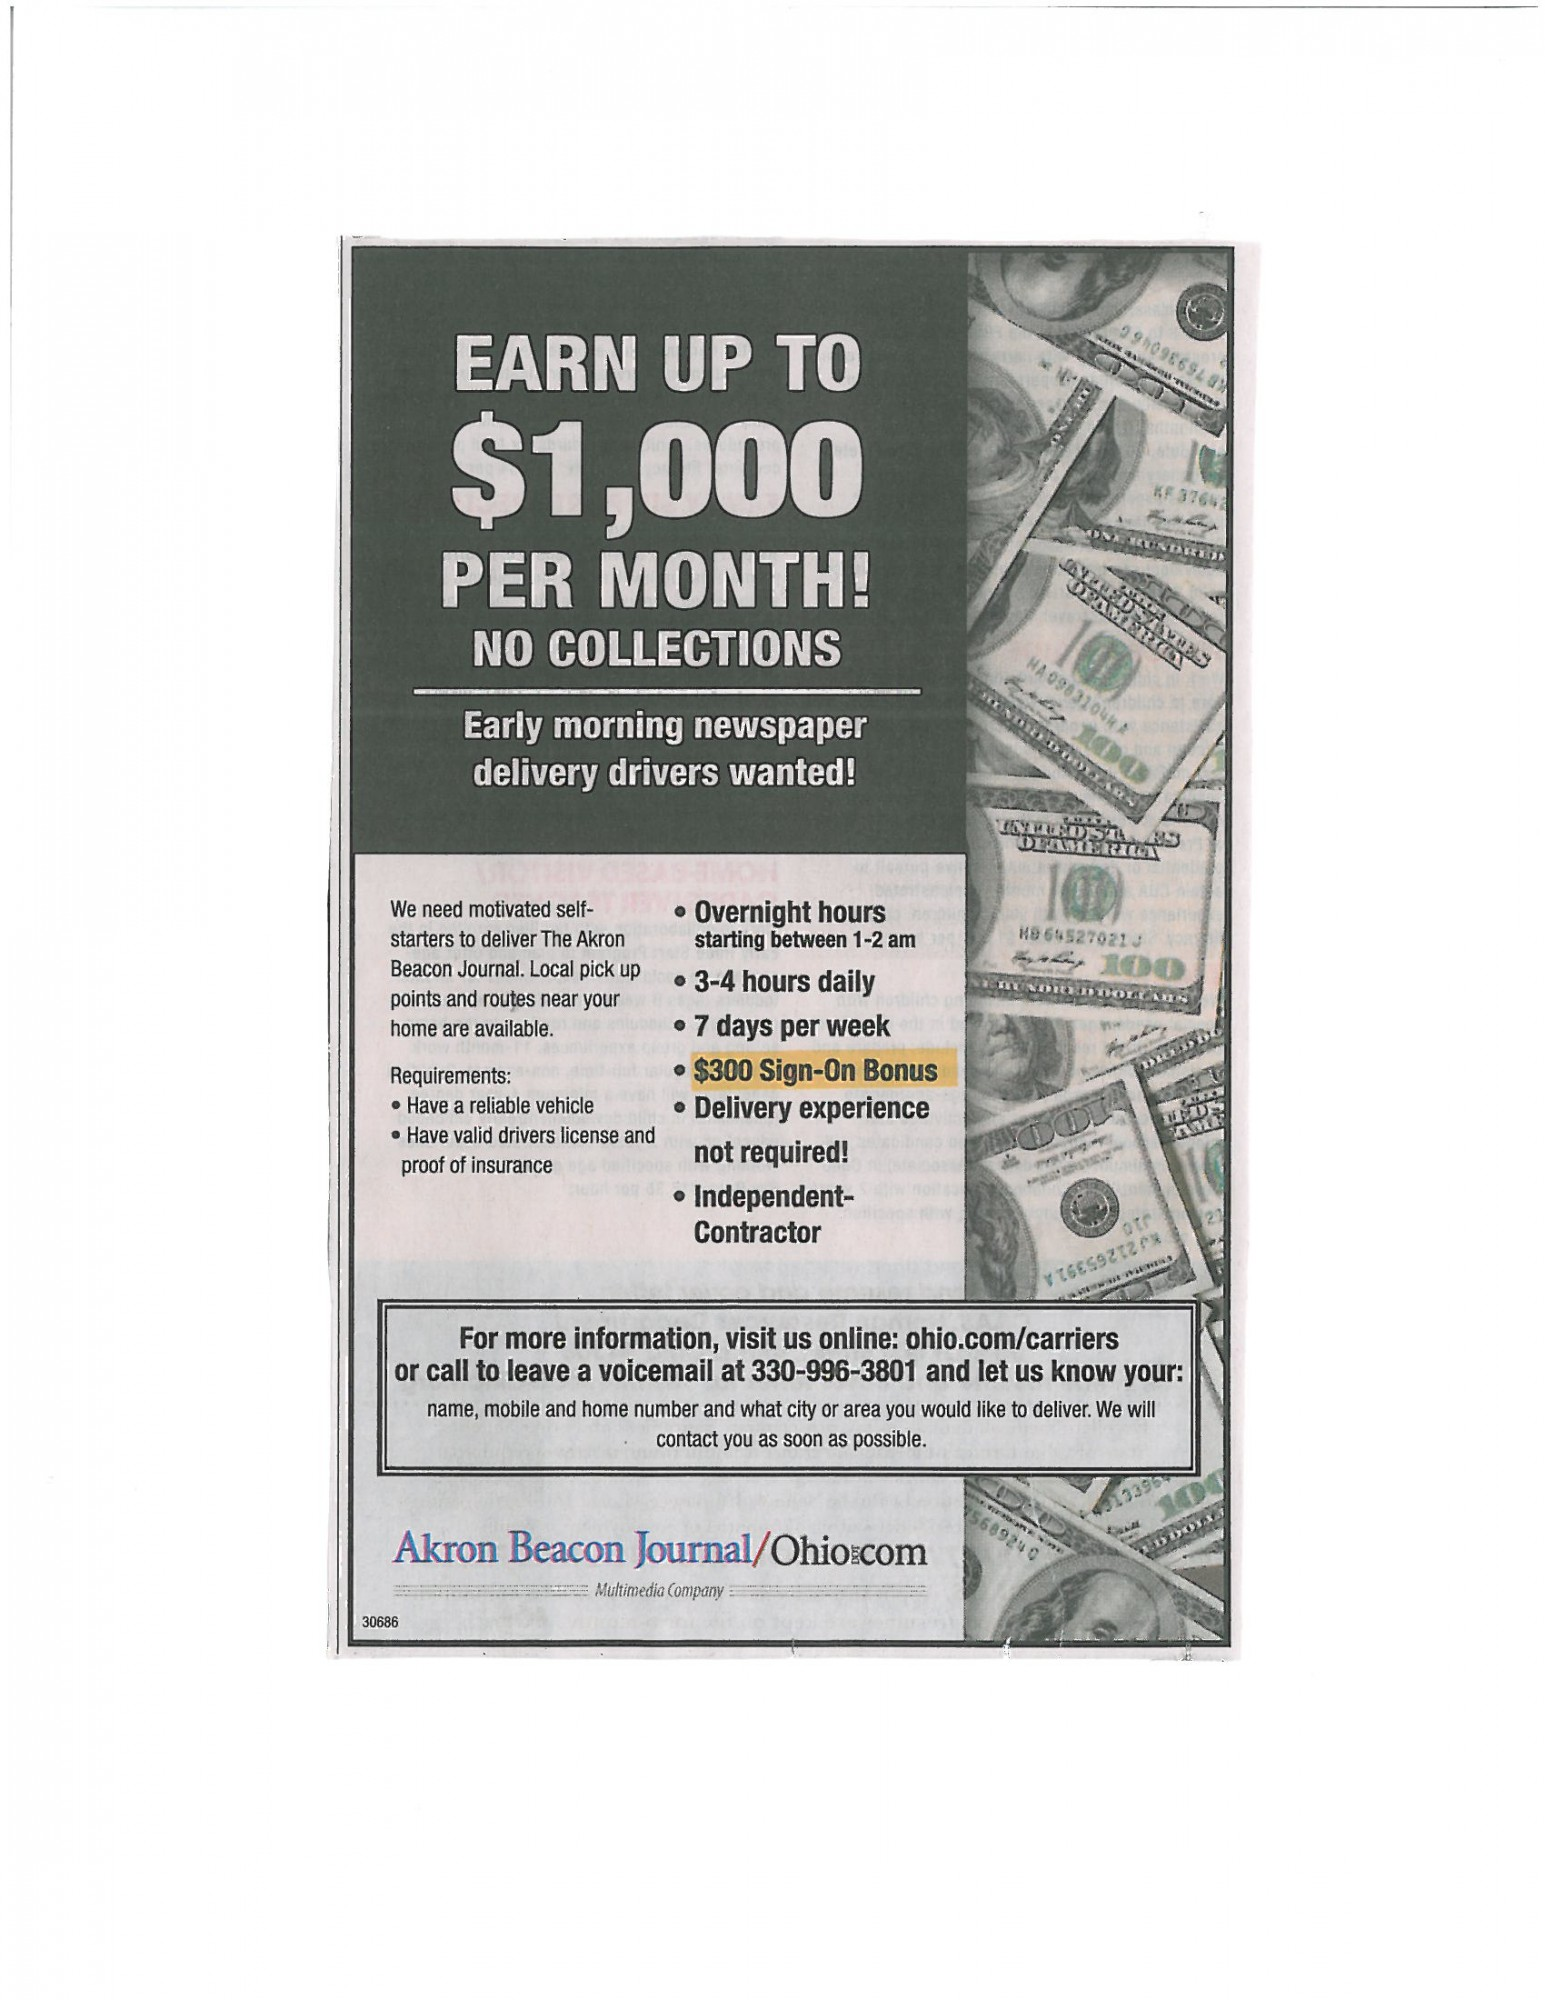 Earn Up To $1000 per month